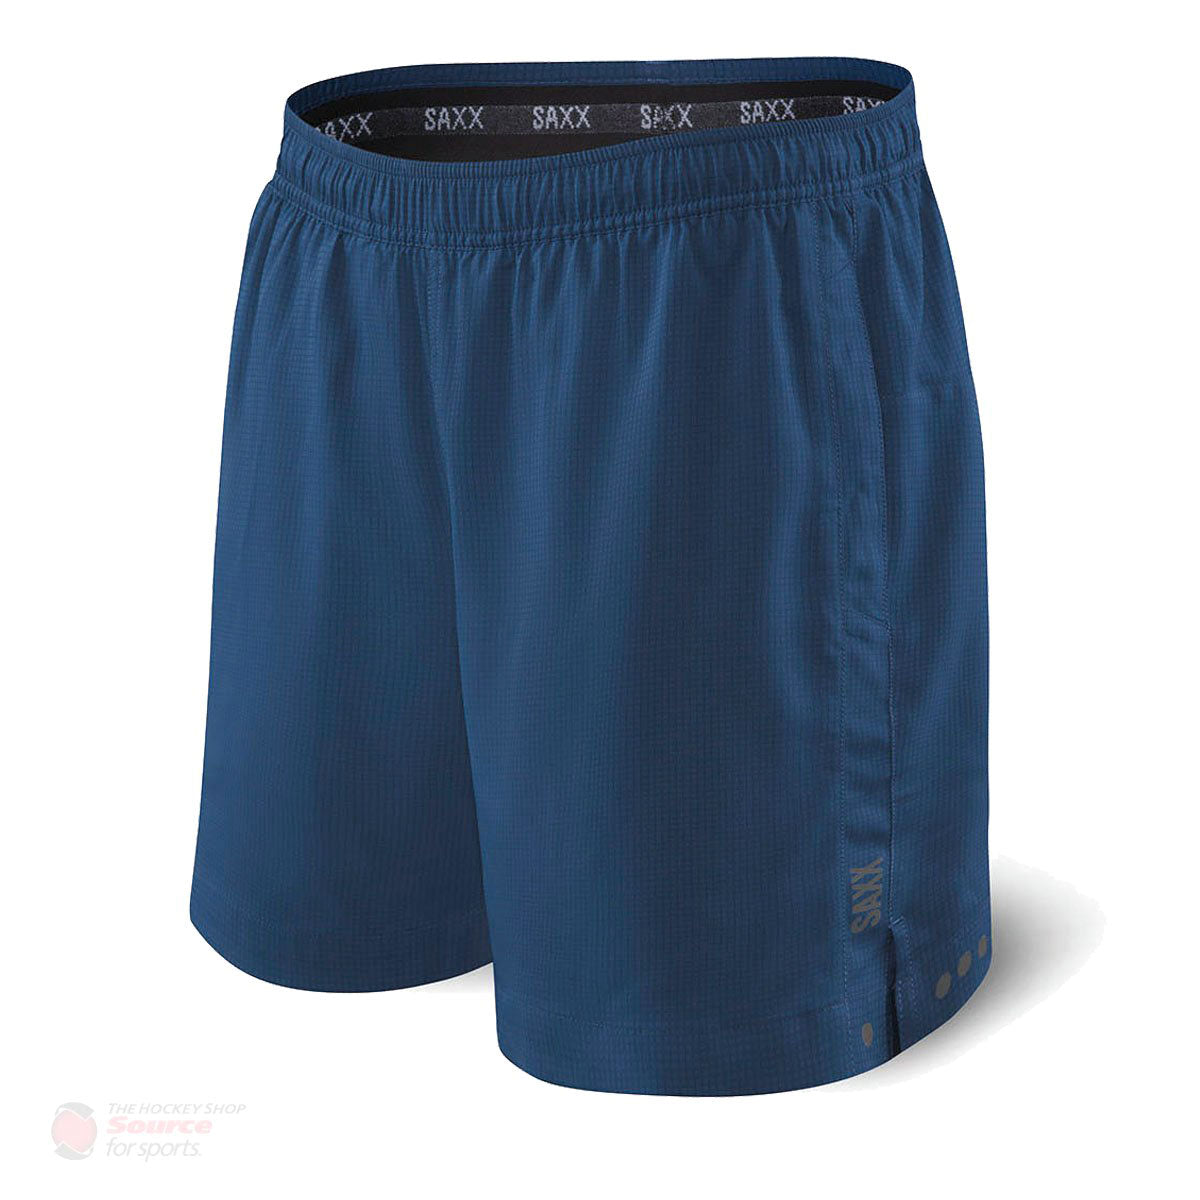 Saxx Kinetic 2N1 Sport Shorts - Velvet Blue